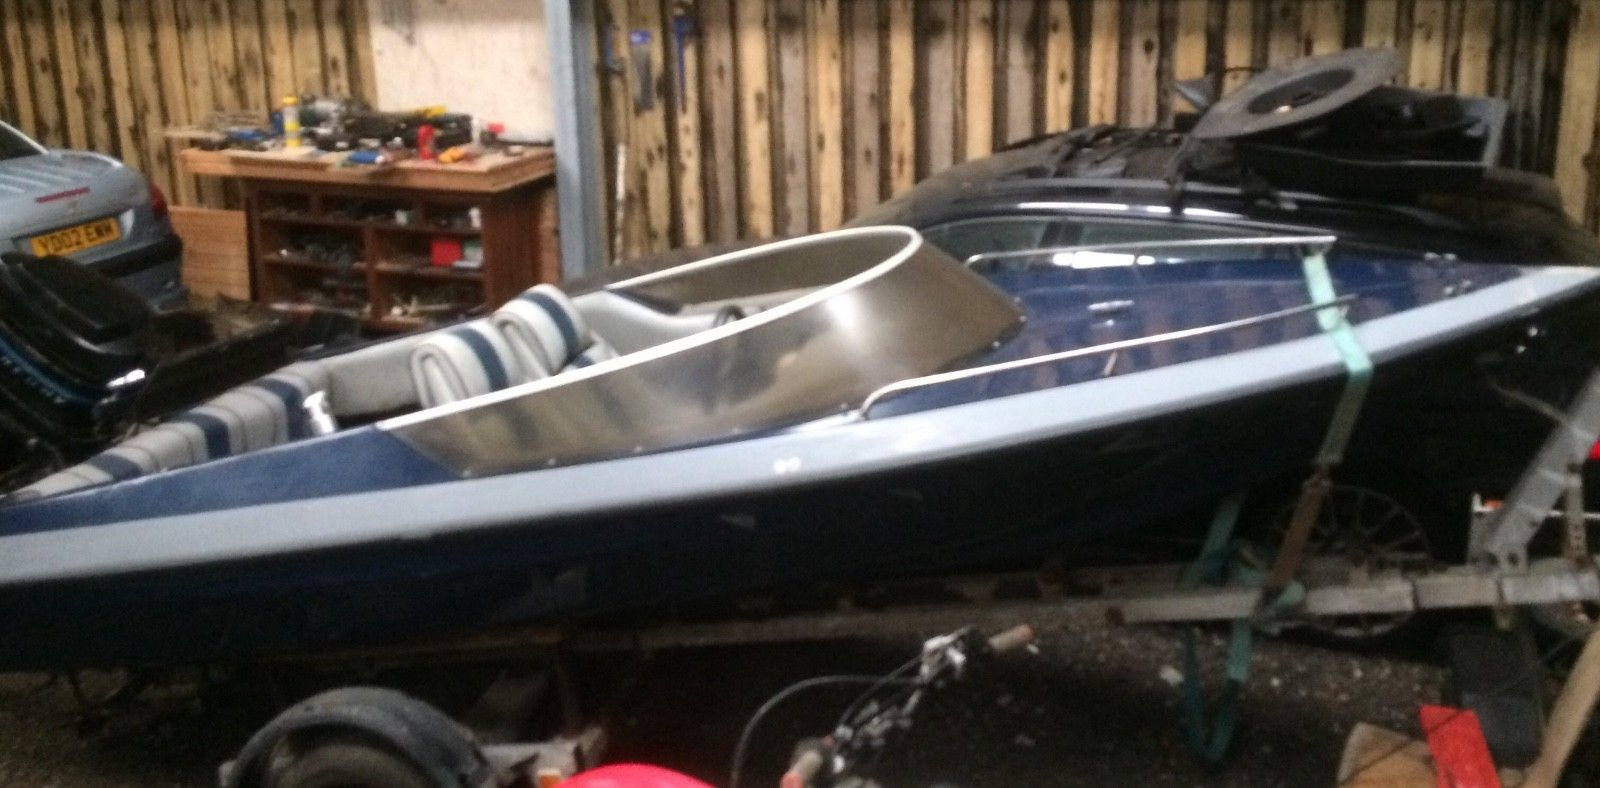 hight resolution of picton speedboat with mercury thunderbolt outboard and trailer